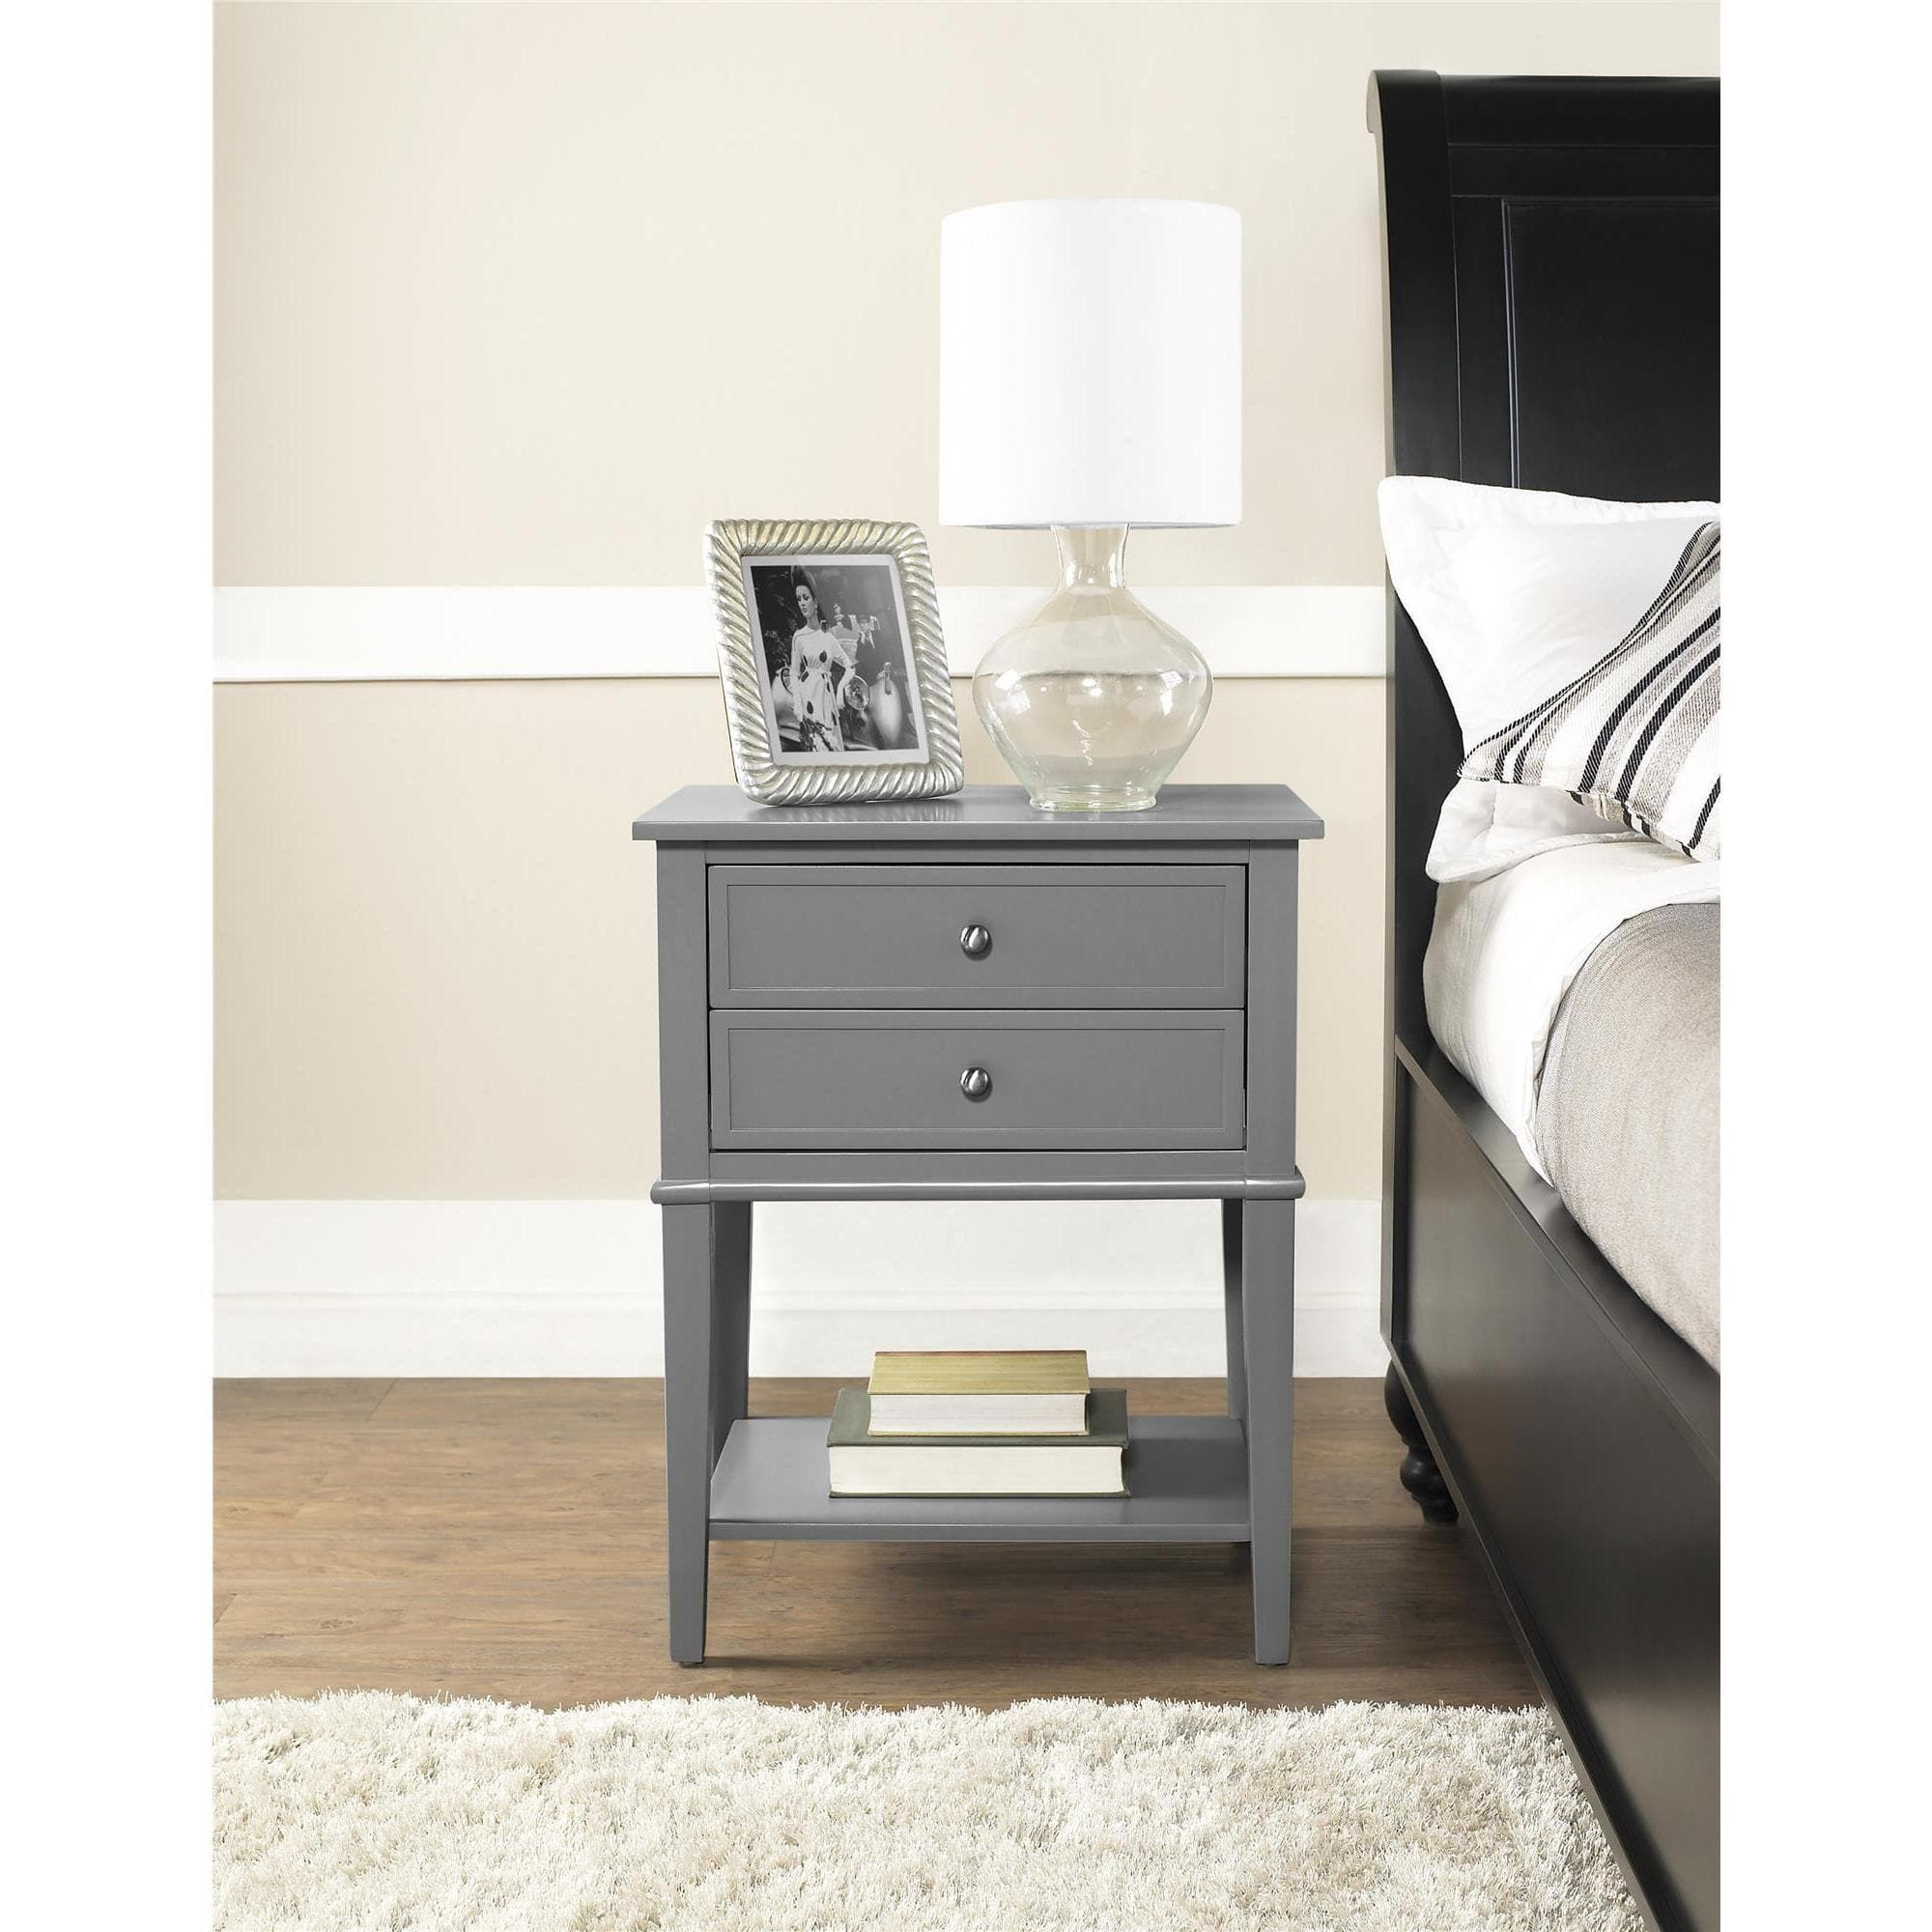 clay alder home isleton white drawer accent table red with drawers grey patriotic runner tabletop gas grill farmhouse dining plans bedroom night lamps hairpin leg end cube style